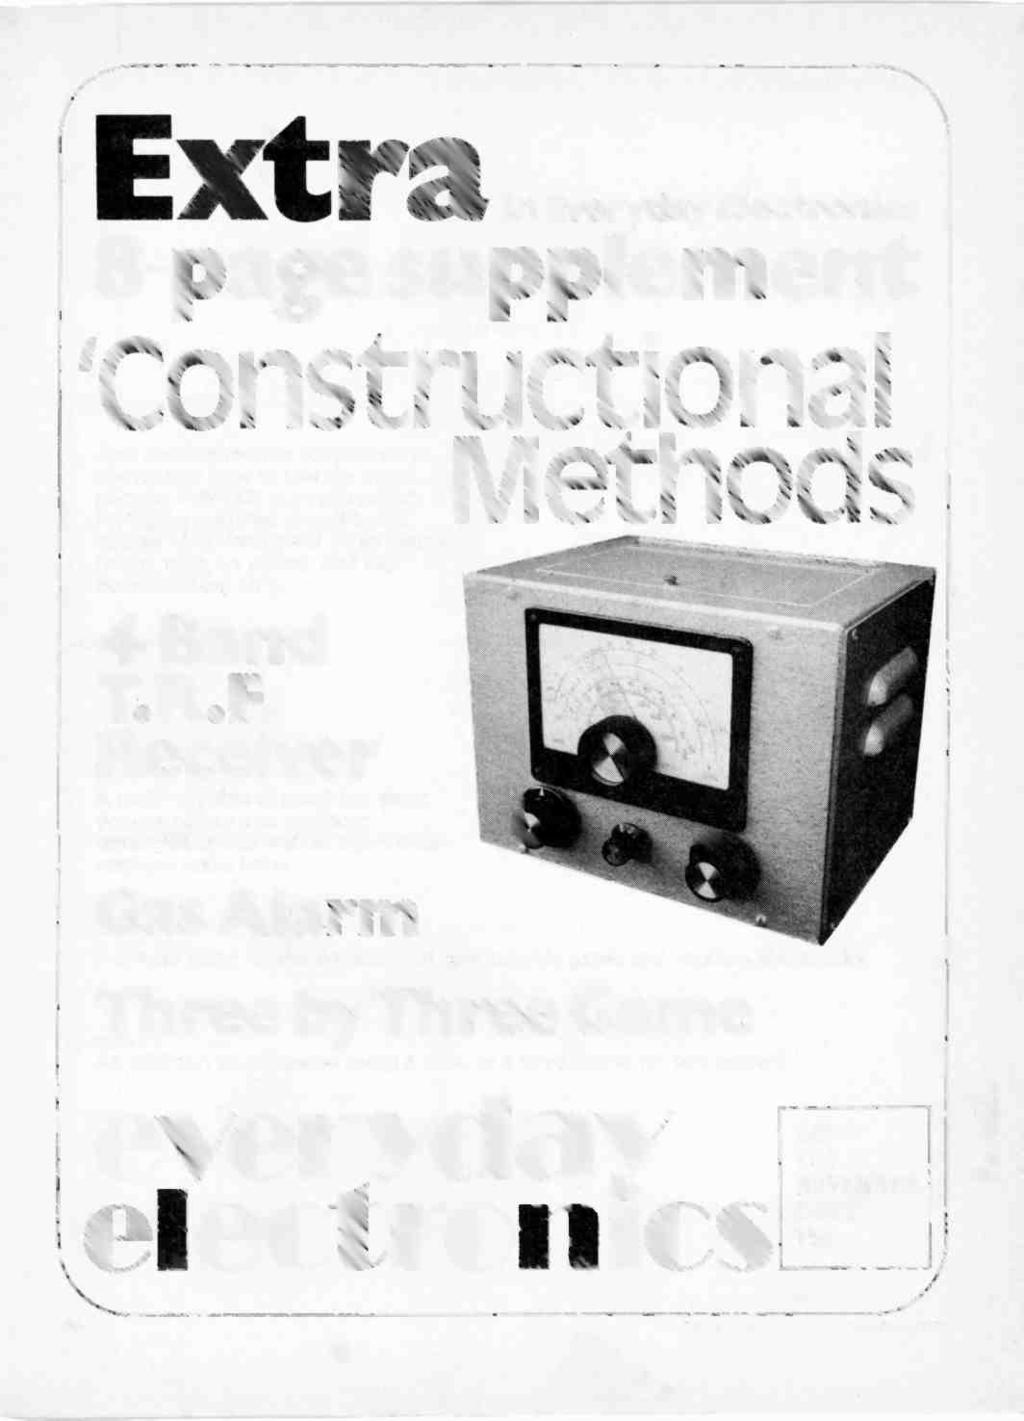 Electro Ics A I Constructor November P Also Eight Channel Ic Plain Copperclad Fibreglass Circuit Board Rapid Online Ext In Everyday Electronics 8 Page Supplement Constructional This Comprehensive Shows You How Matrix